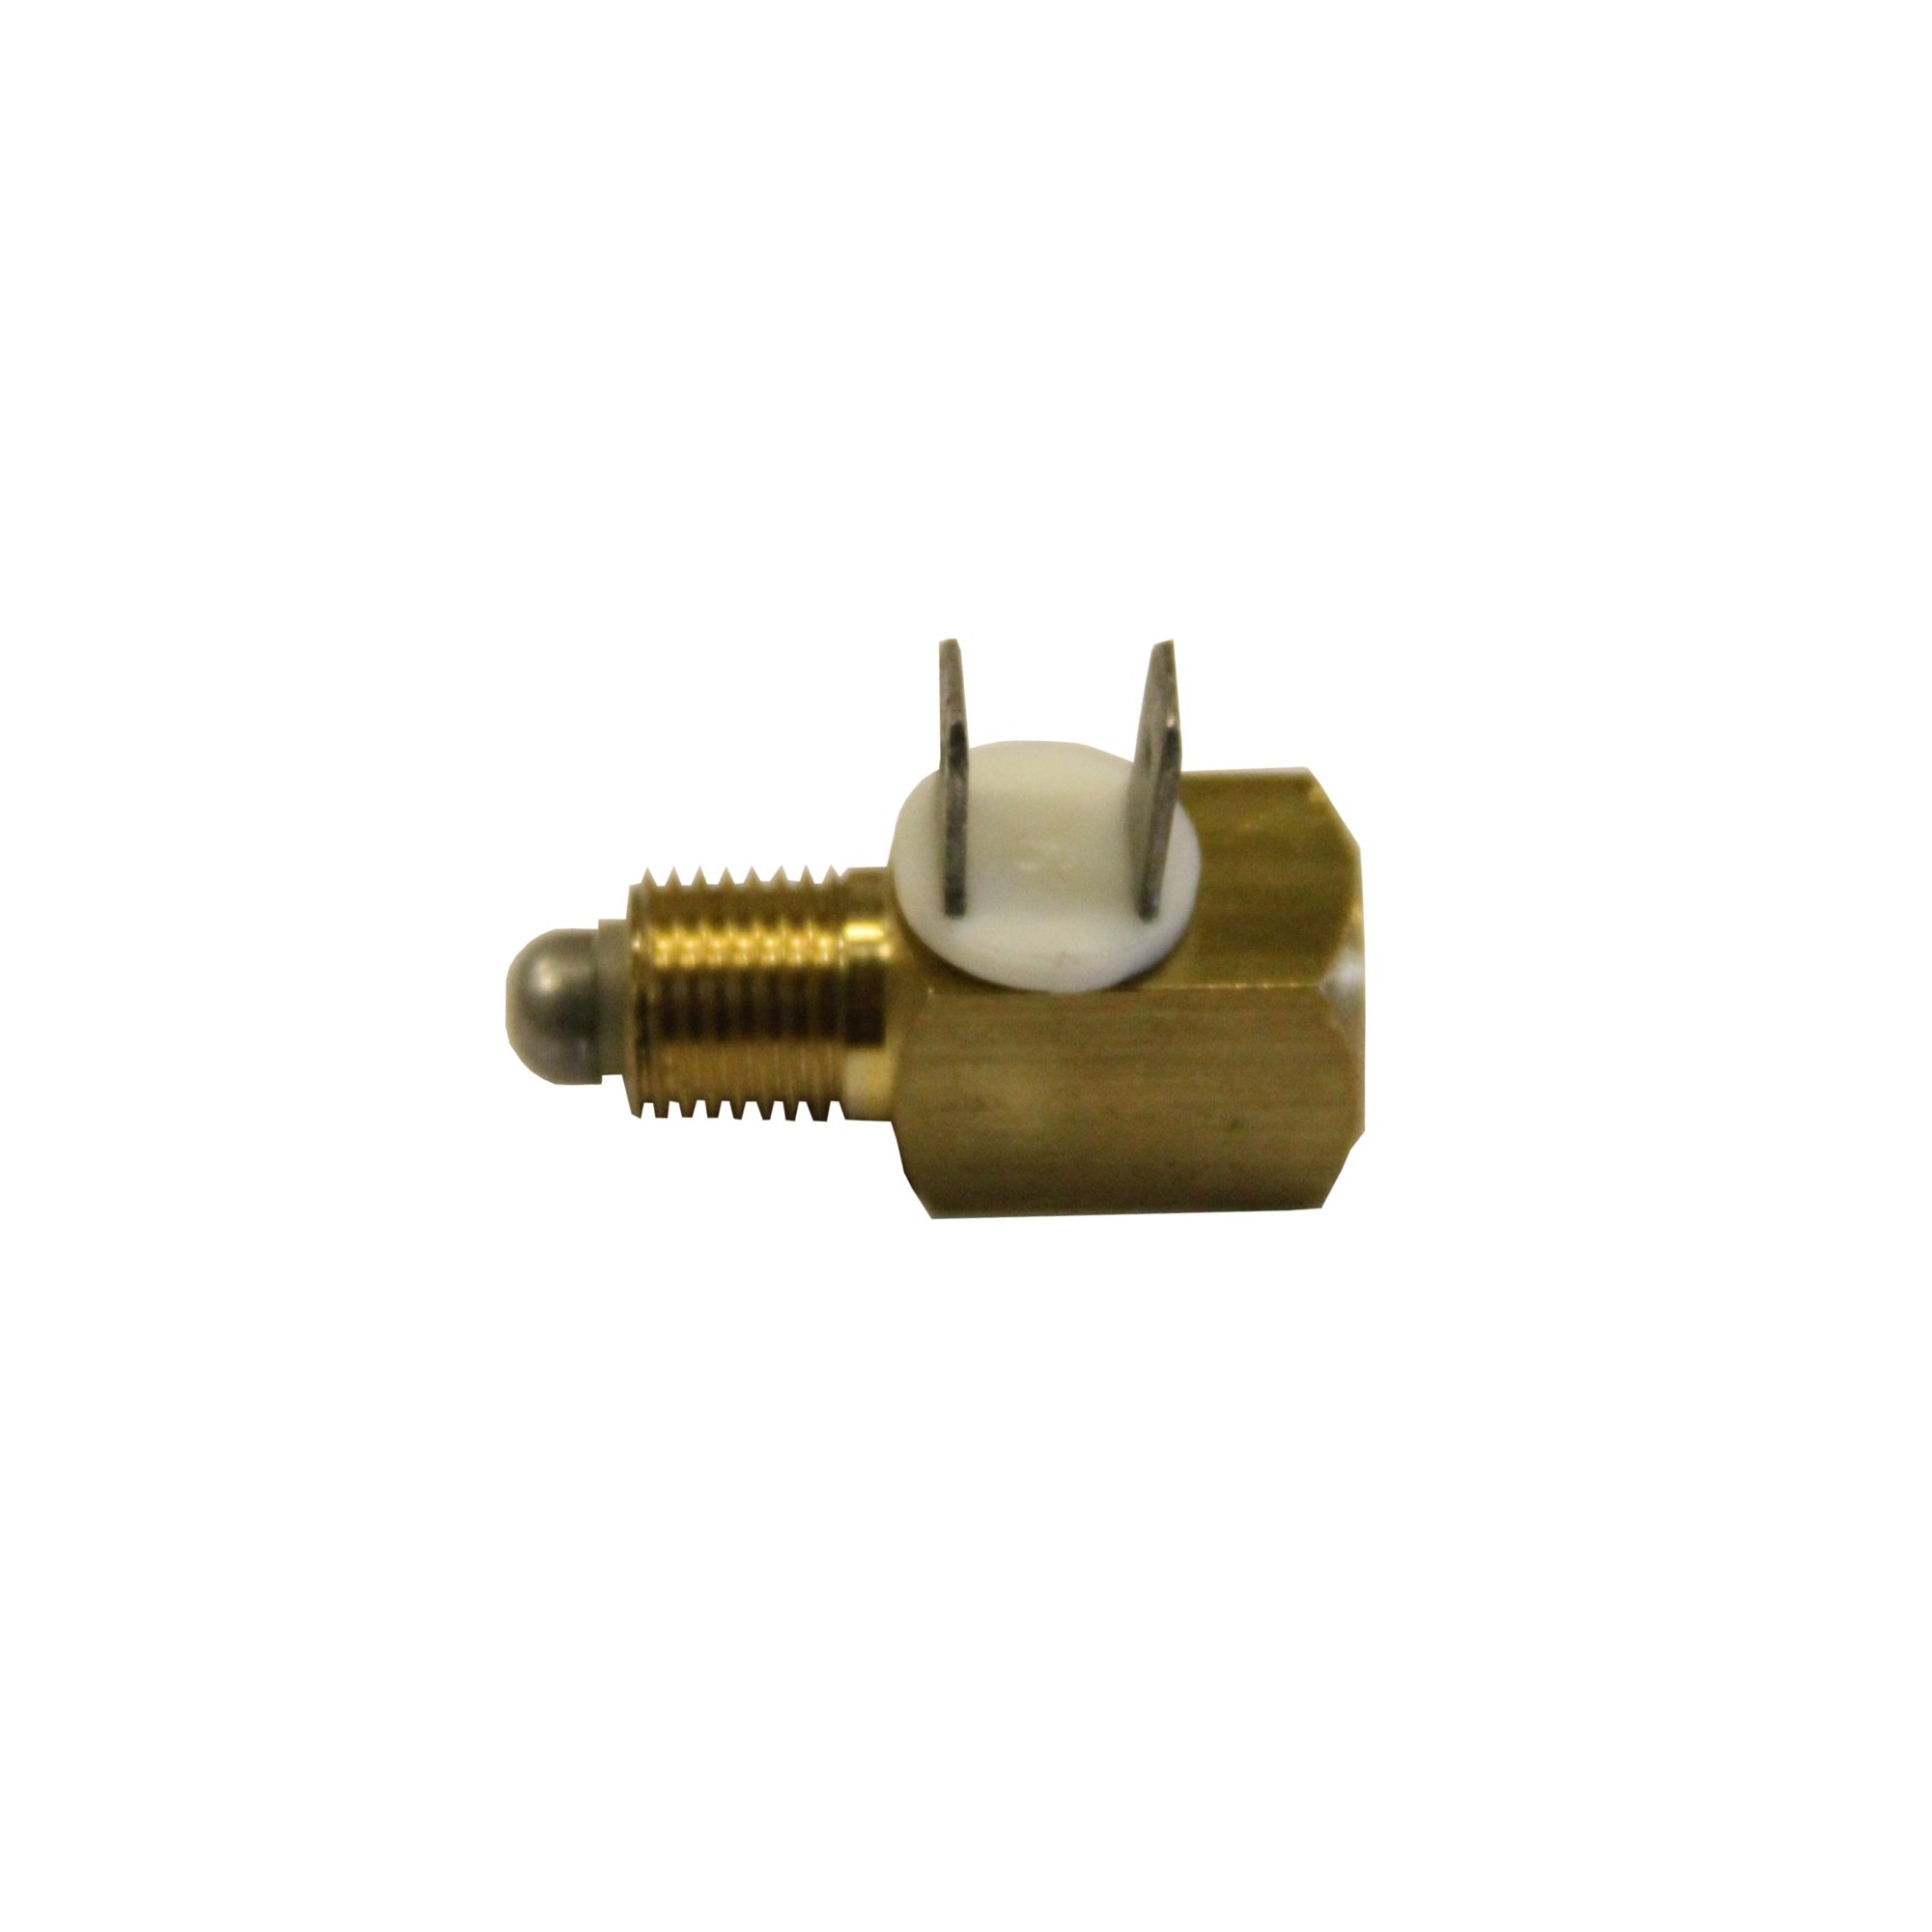 THERMAL REFLUX SAFETY CONNECTOR M9